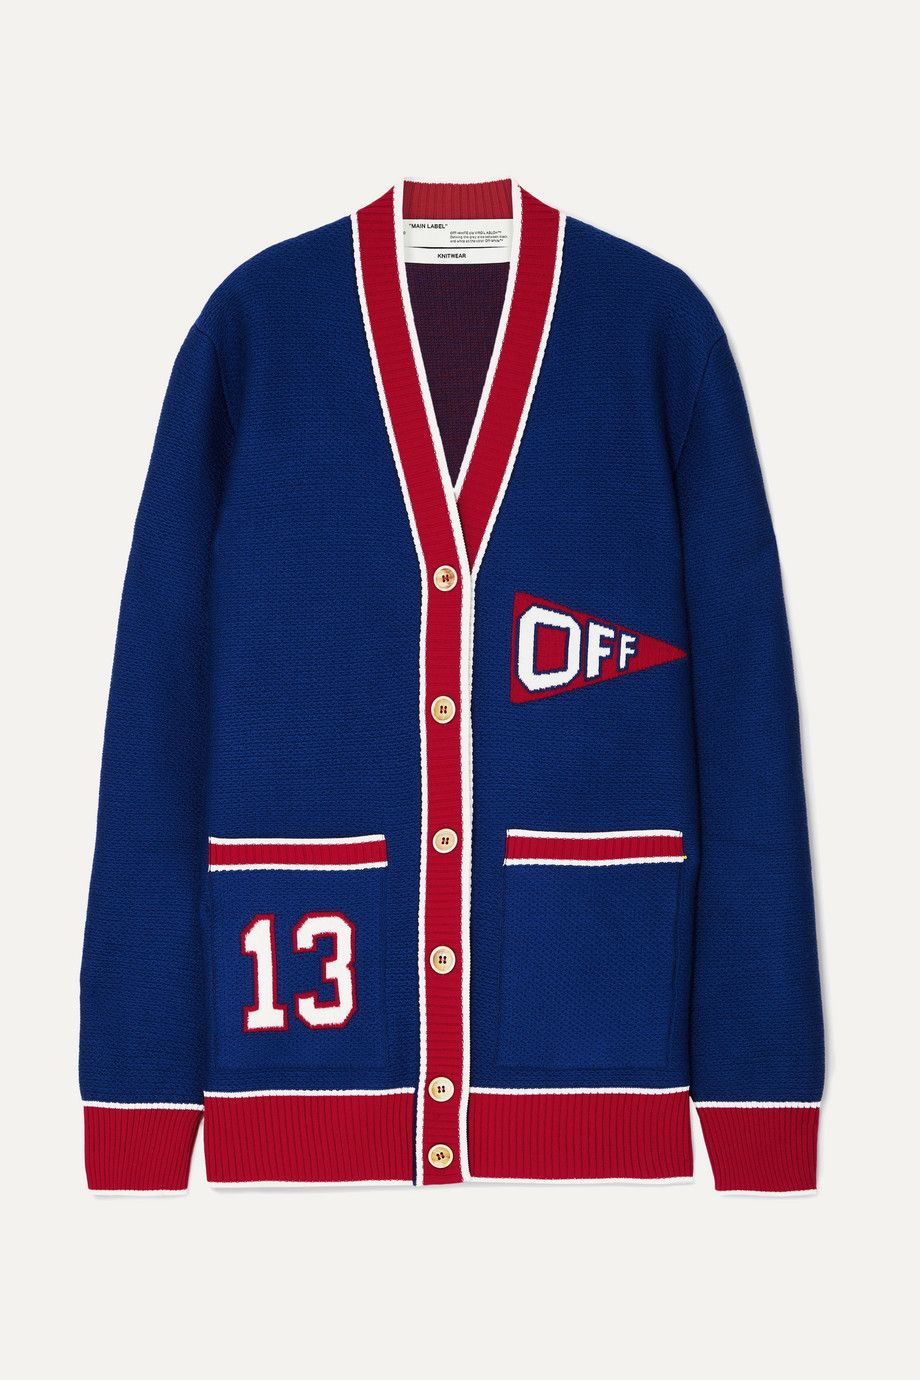 off-white-intarsia-wool-blend-cardigan